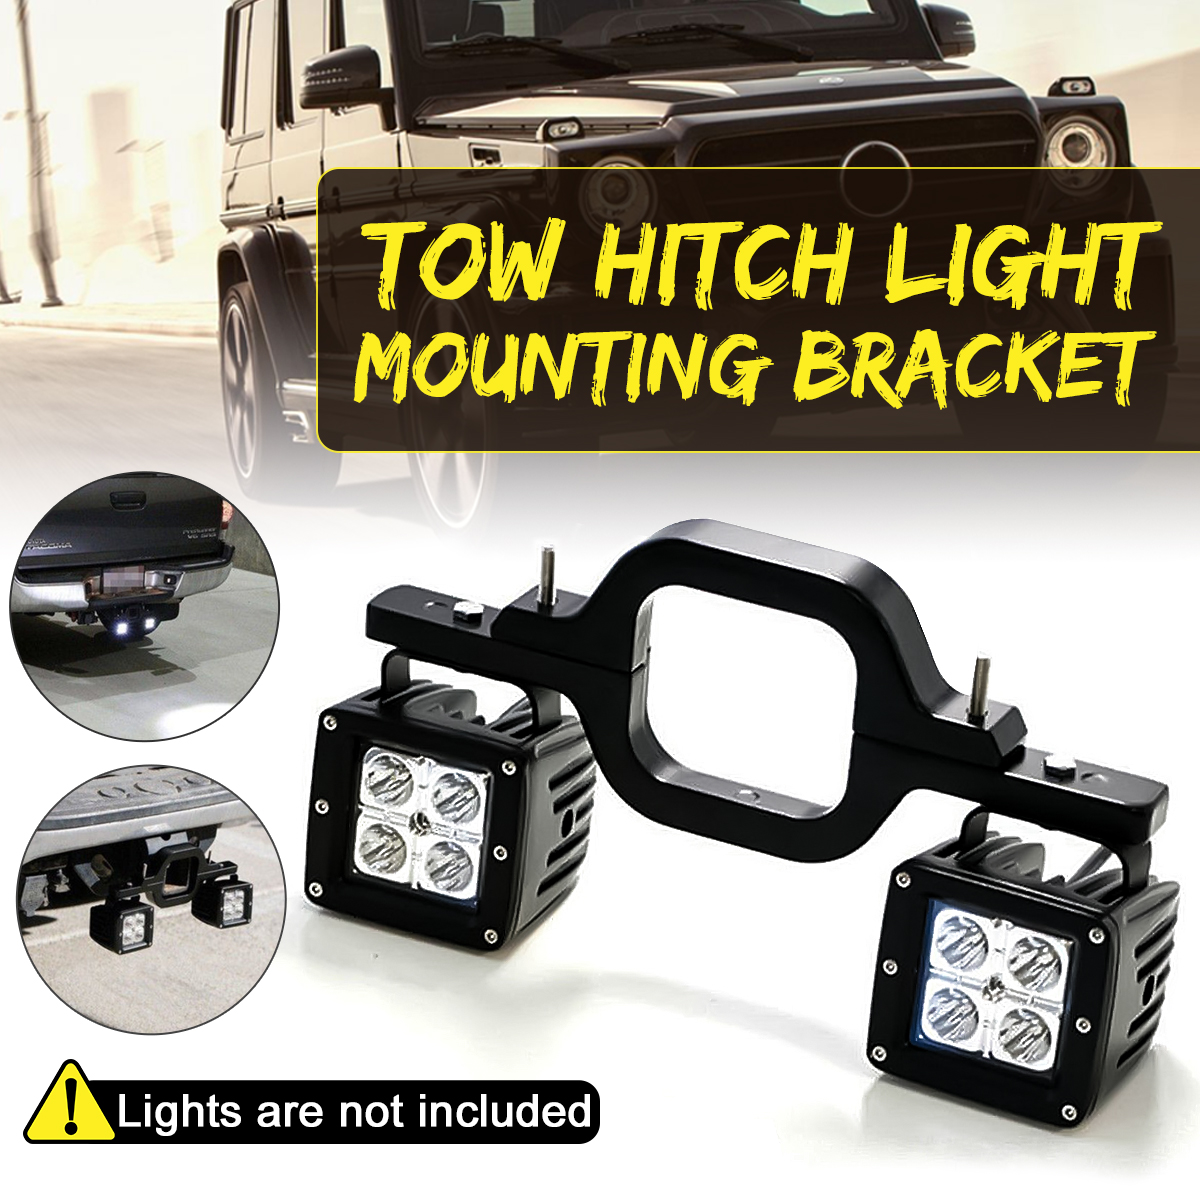 Universal Car Tow Hitch Light Mounting Bracket For Dual LED Backup Reverse Off-Road Truc ...